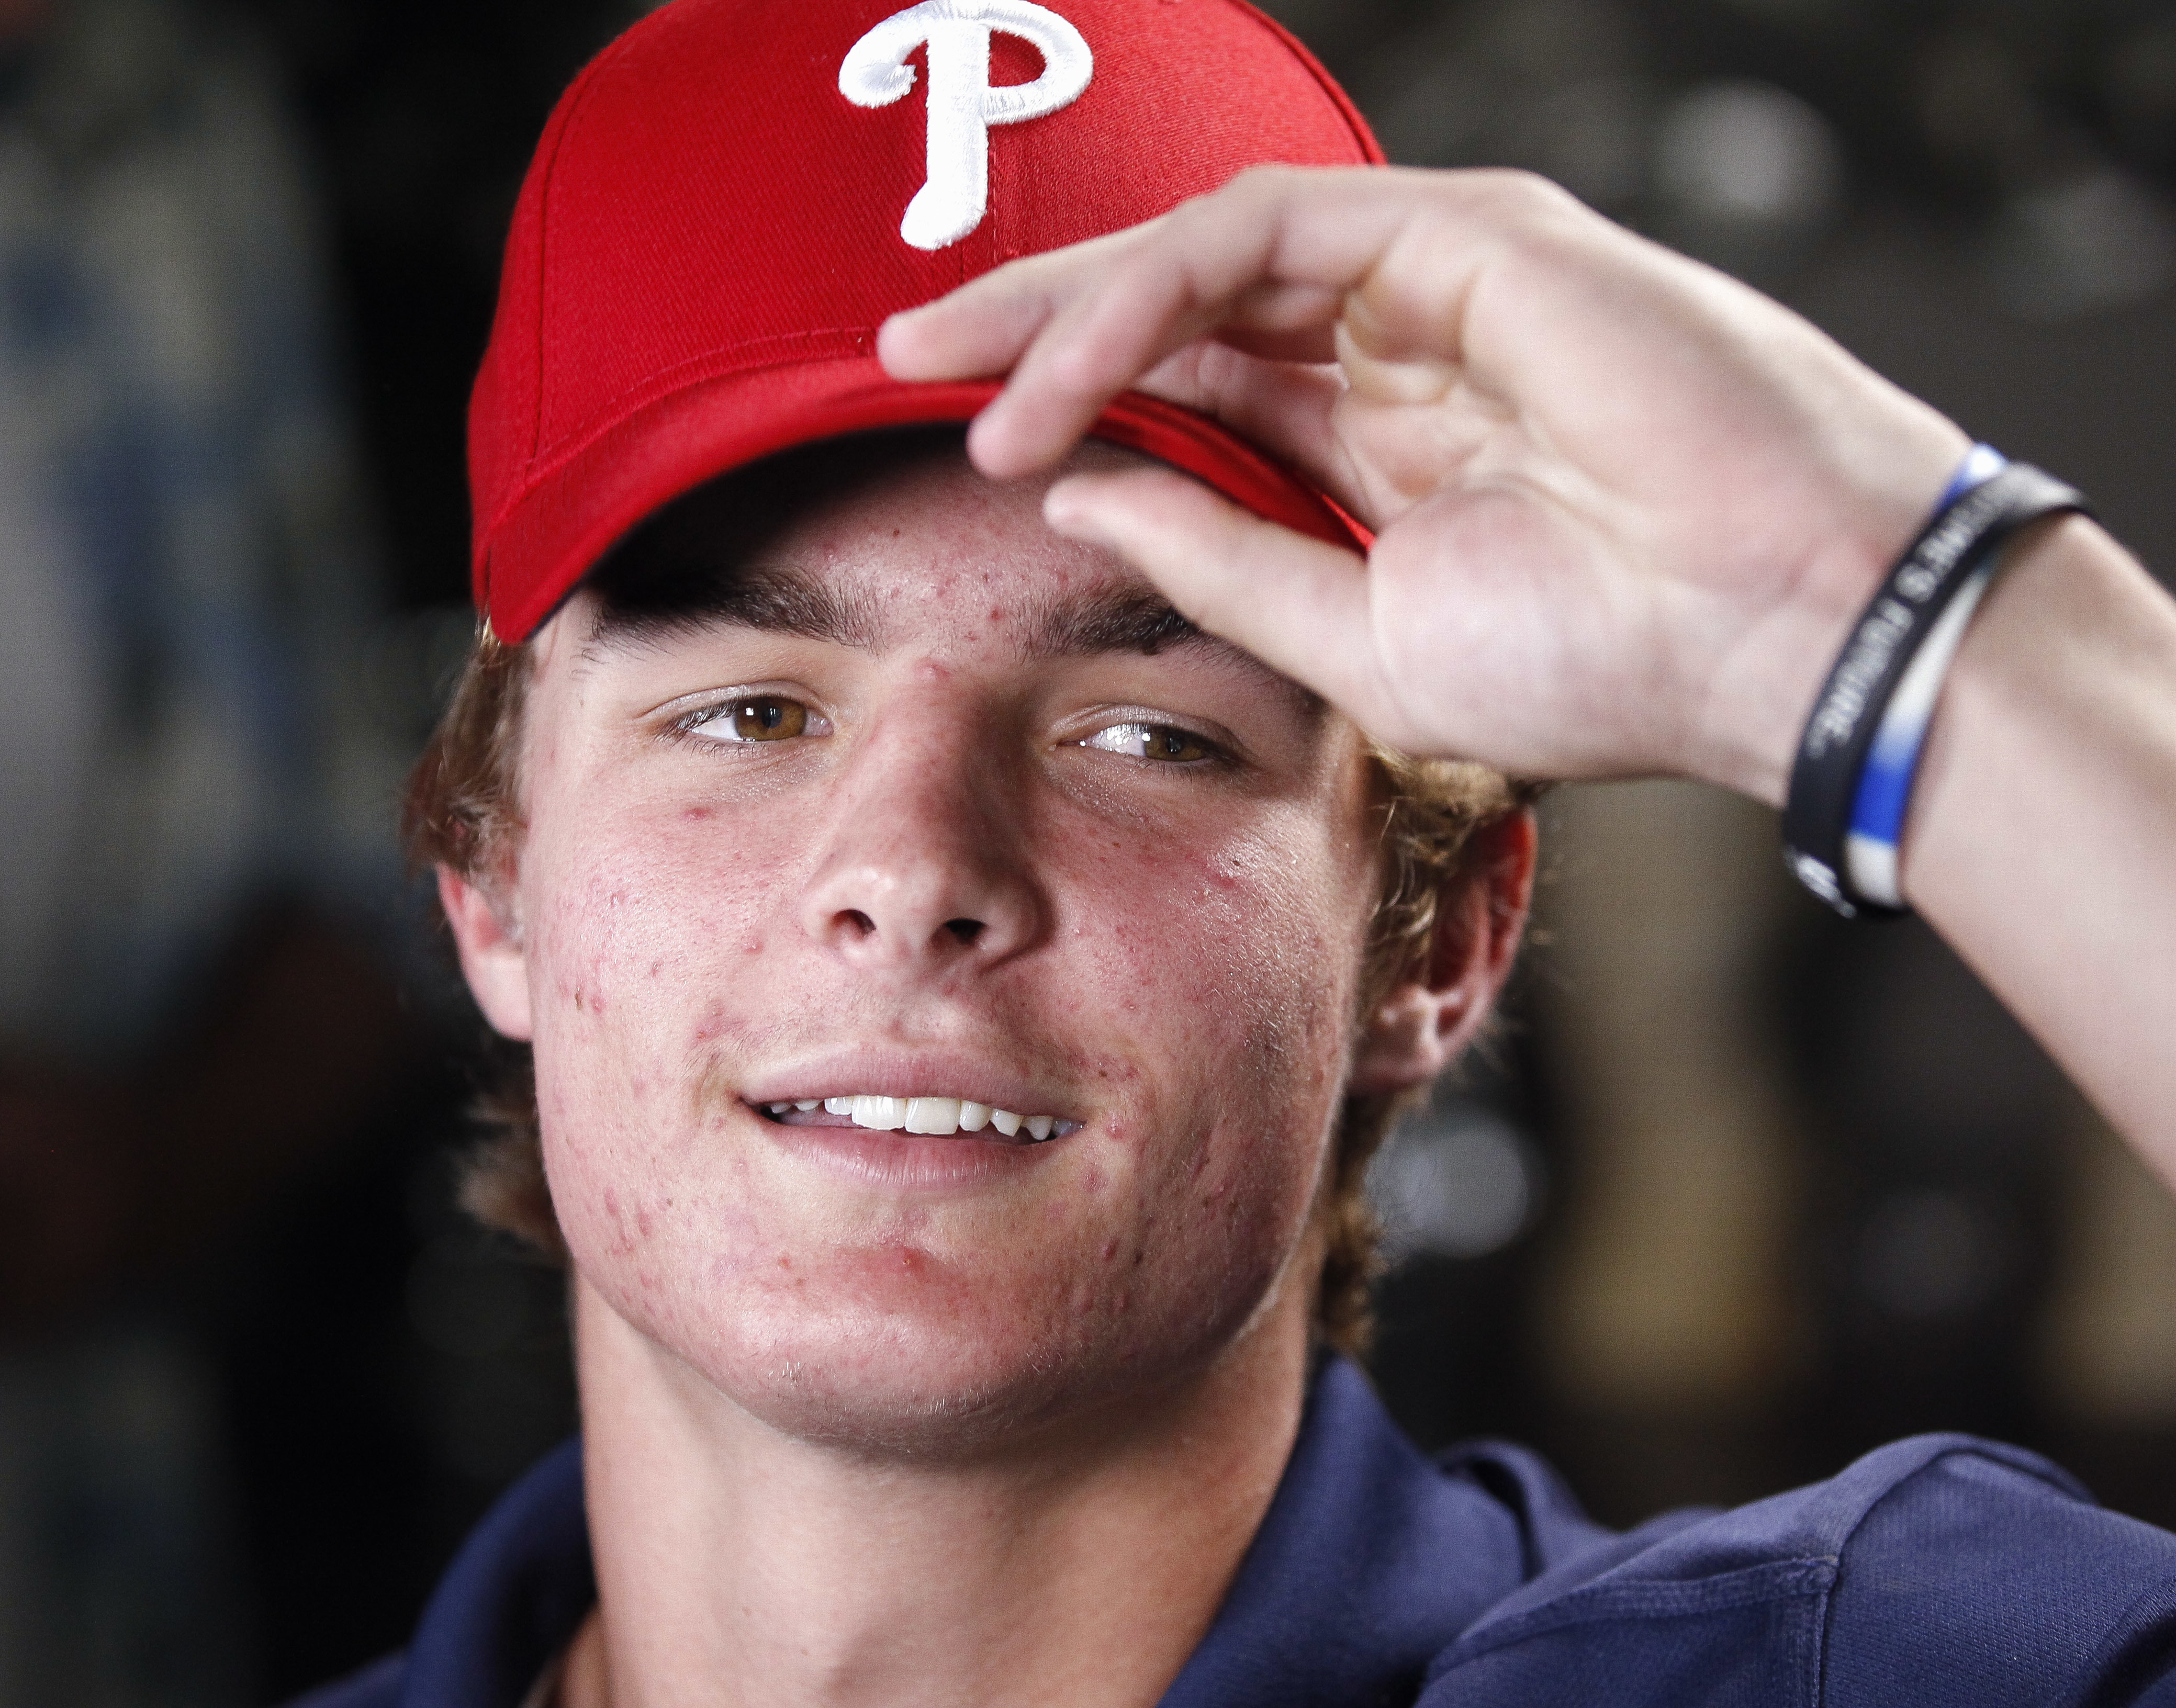 FILE - In this June 9, 2016, file photo, La Costa Canyon baseball player Mickey Moniak puts on a Philadelphia Phillies cap after the Phillies had chosen Moniak with the top pick in the Major League Baseball draft, at Moniak's aunt's house in Carlsbad, Cal